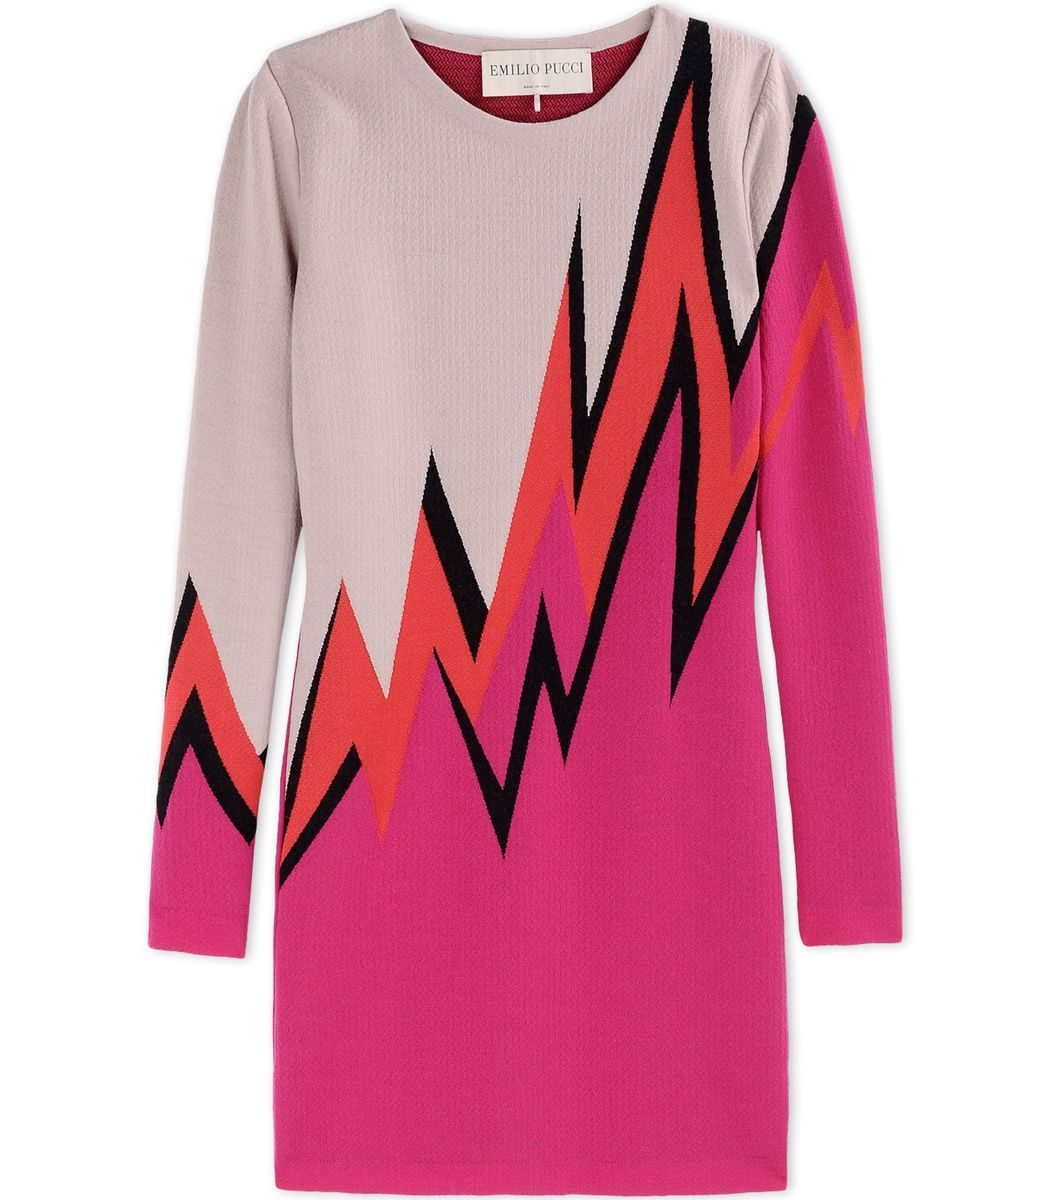 Emilio Pucci Pink Wool-Blend Color-Block Sweater Dress | Fashion ...